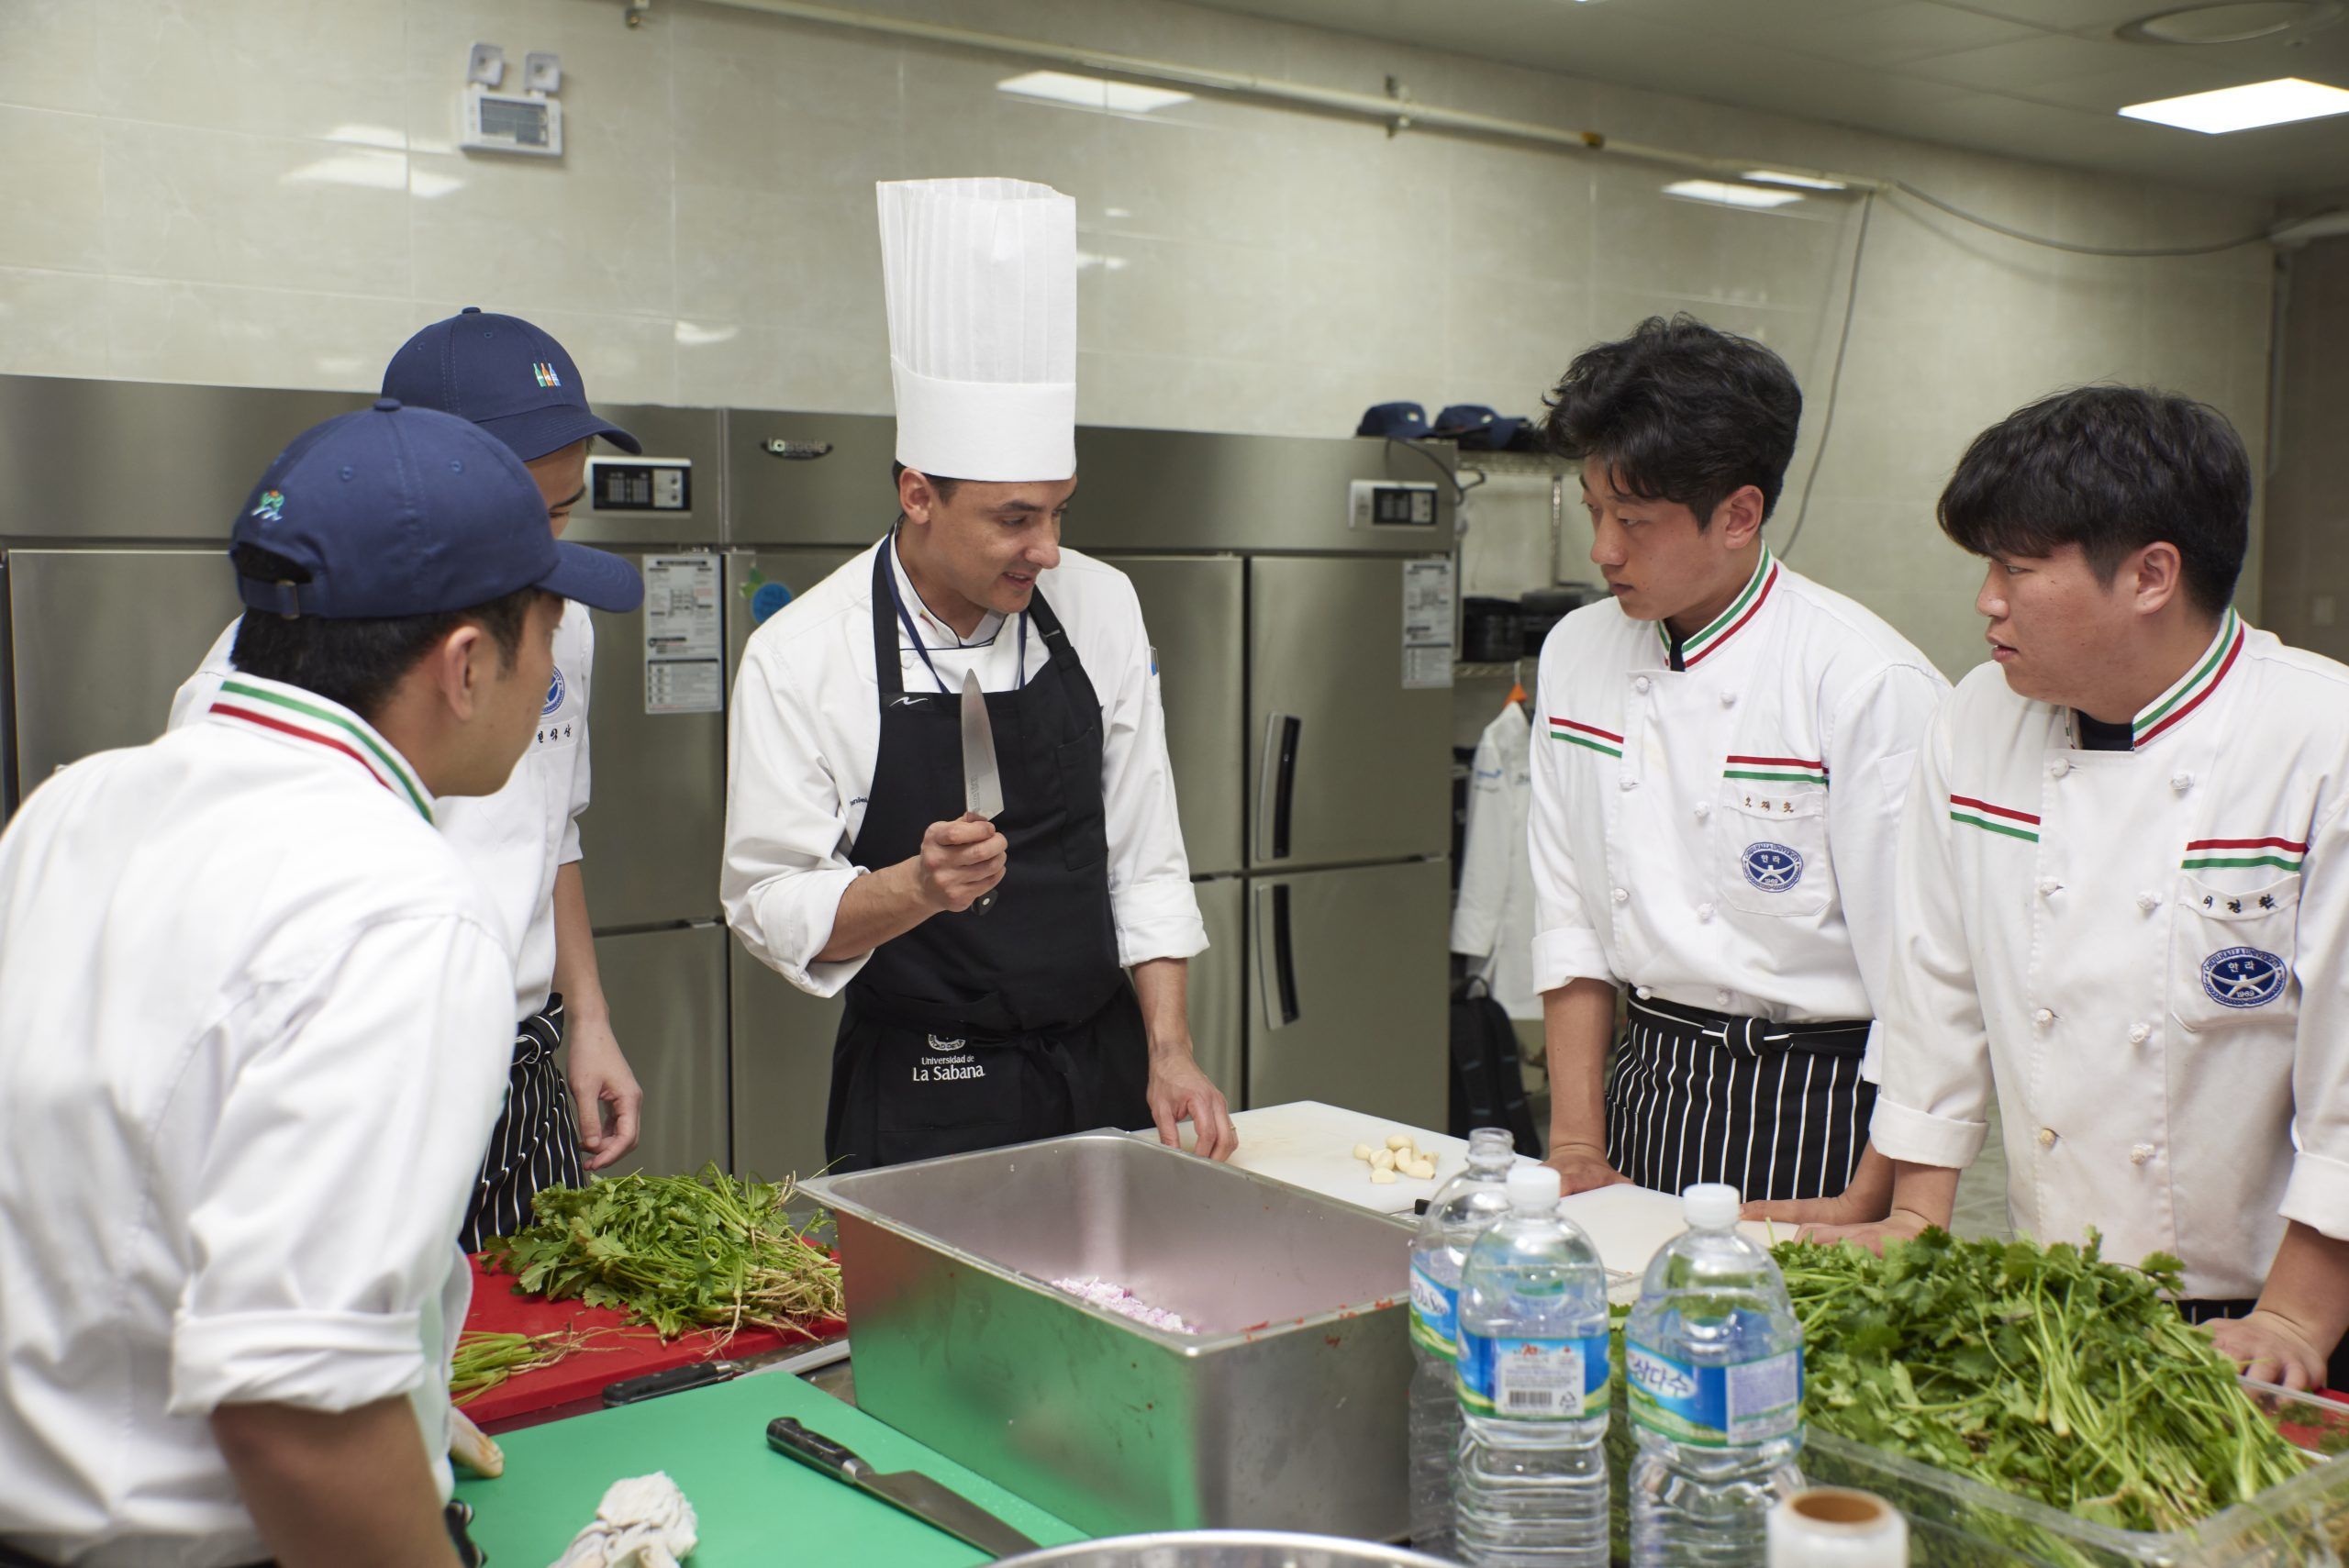 Student Chefs Preparing Food with Daniel Prada Chef from Columbia.